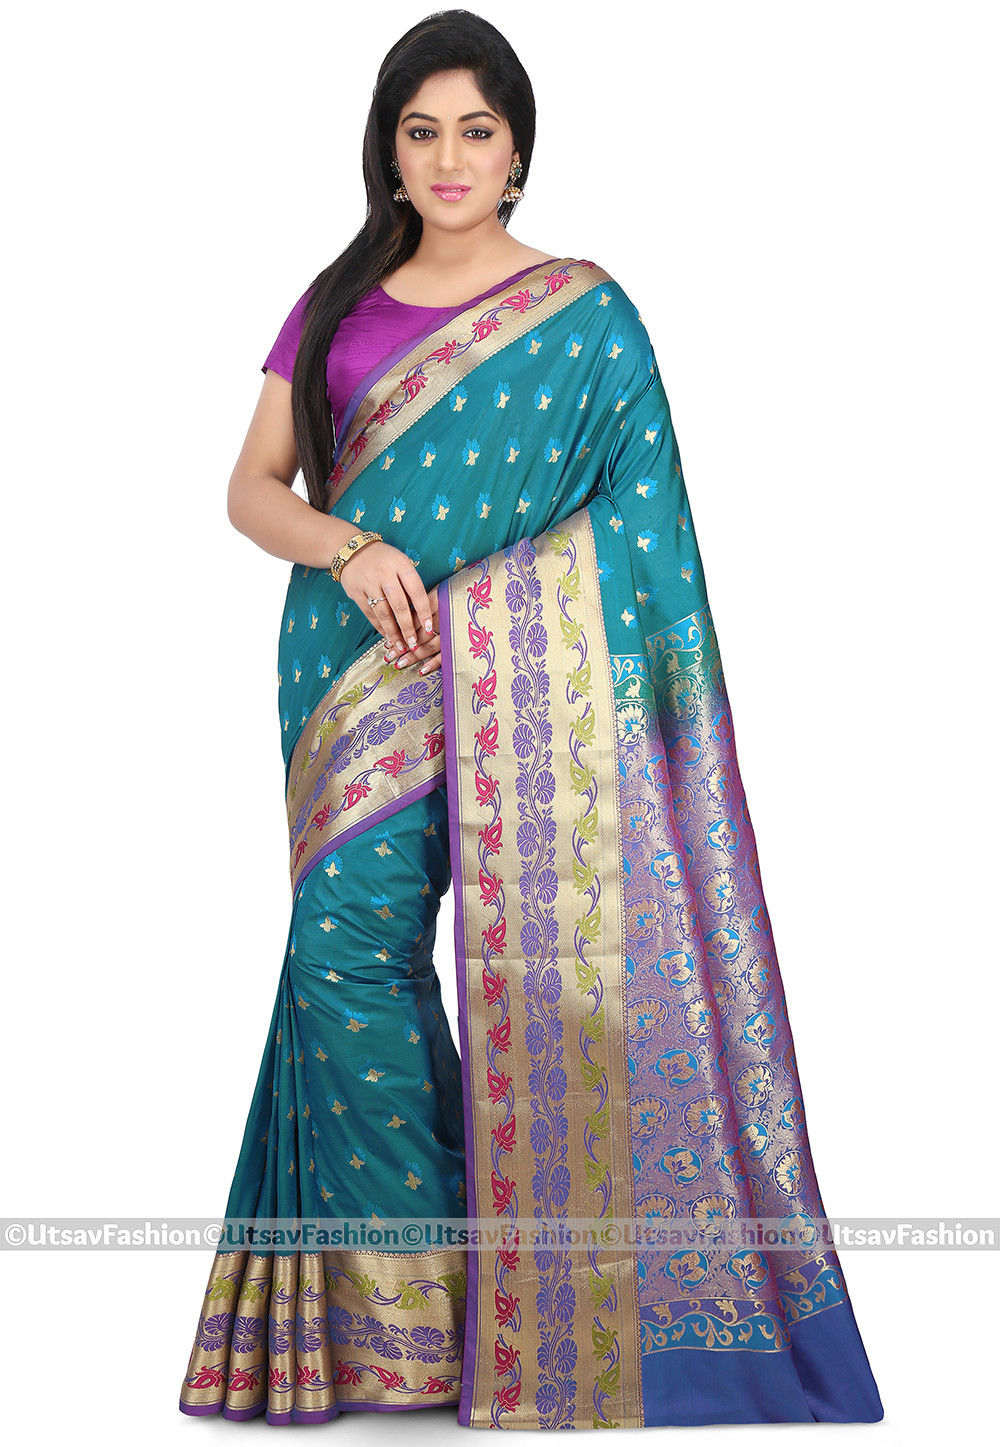 Kanchipuram Saree in Teal Blue